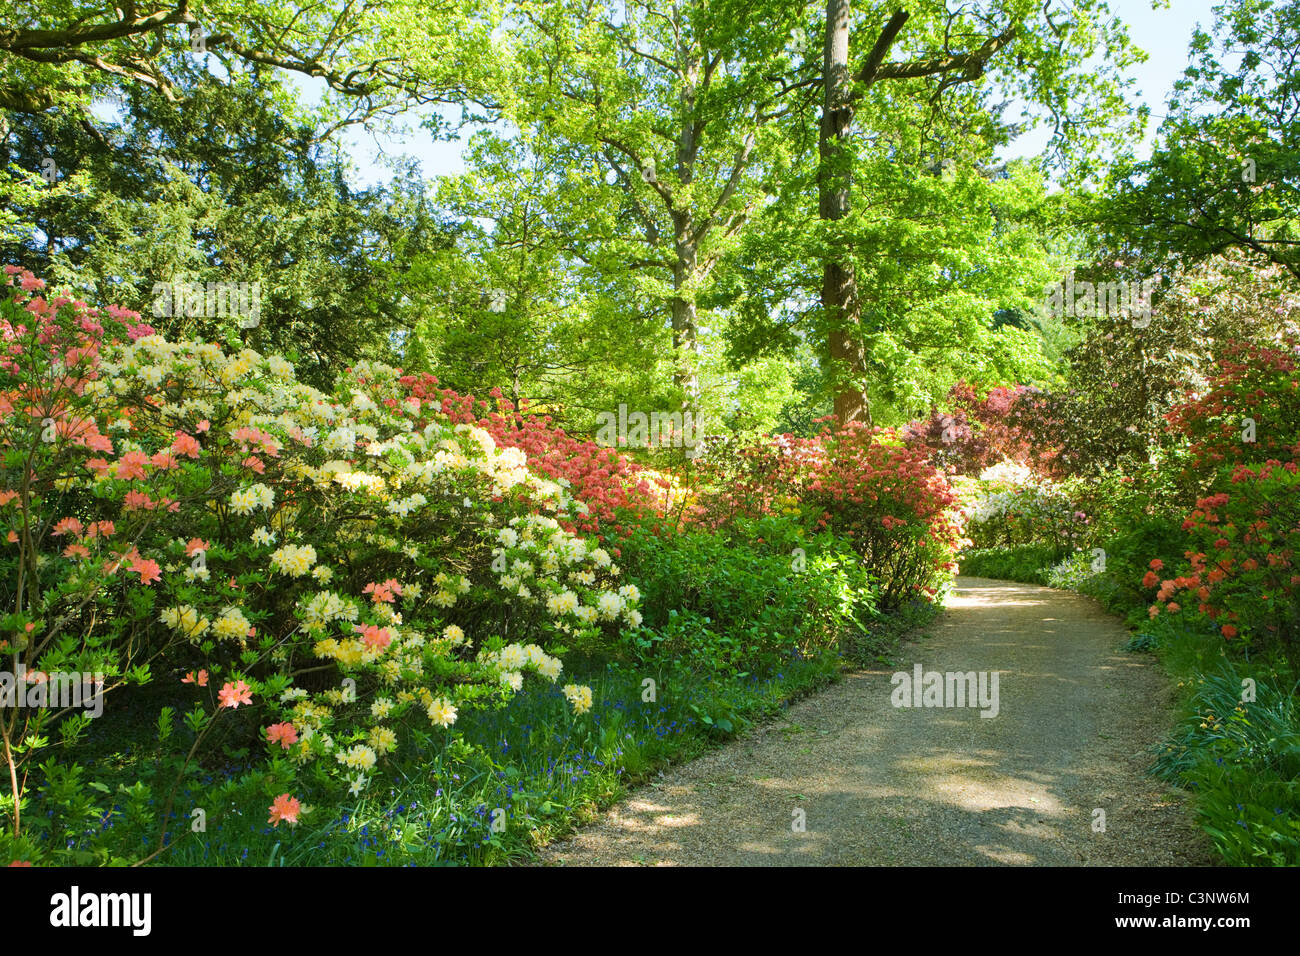 Garten mit Rhododendren, Coverwood Farm, Surrey, UK. Stockbild